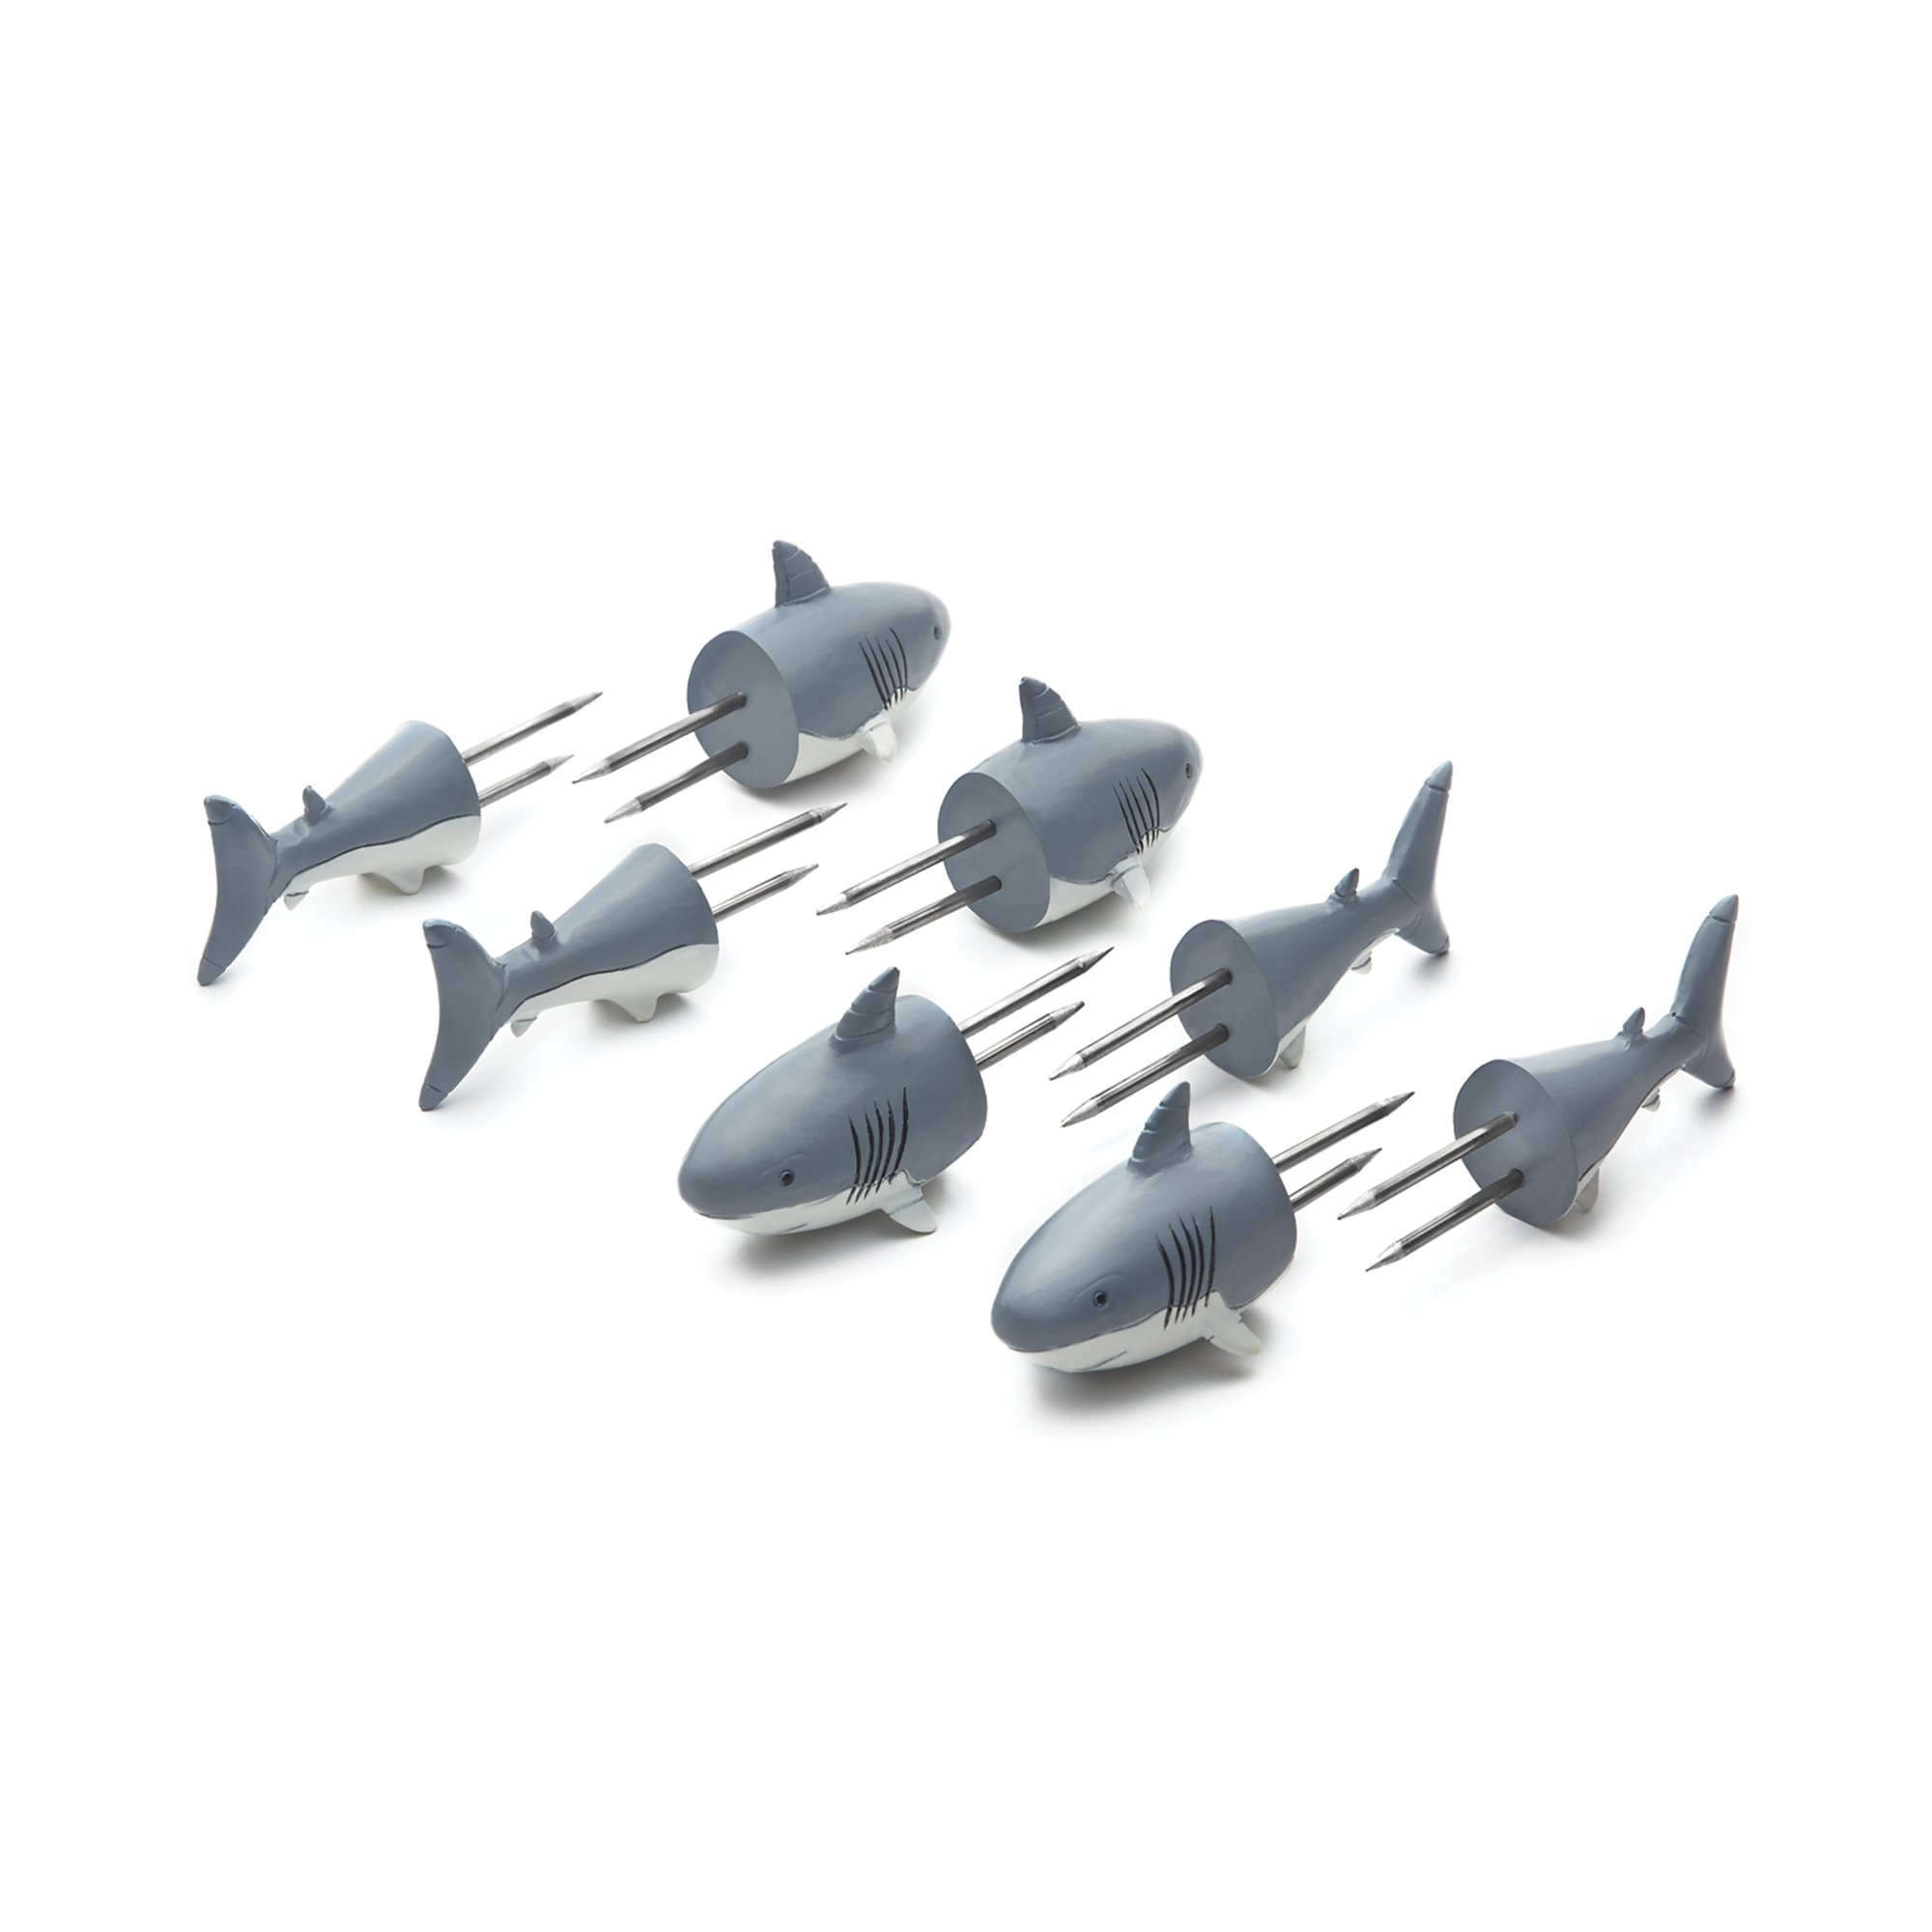 Outset 76168 Shark Corn Holders, Set of 4 Pairs, by Outset